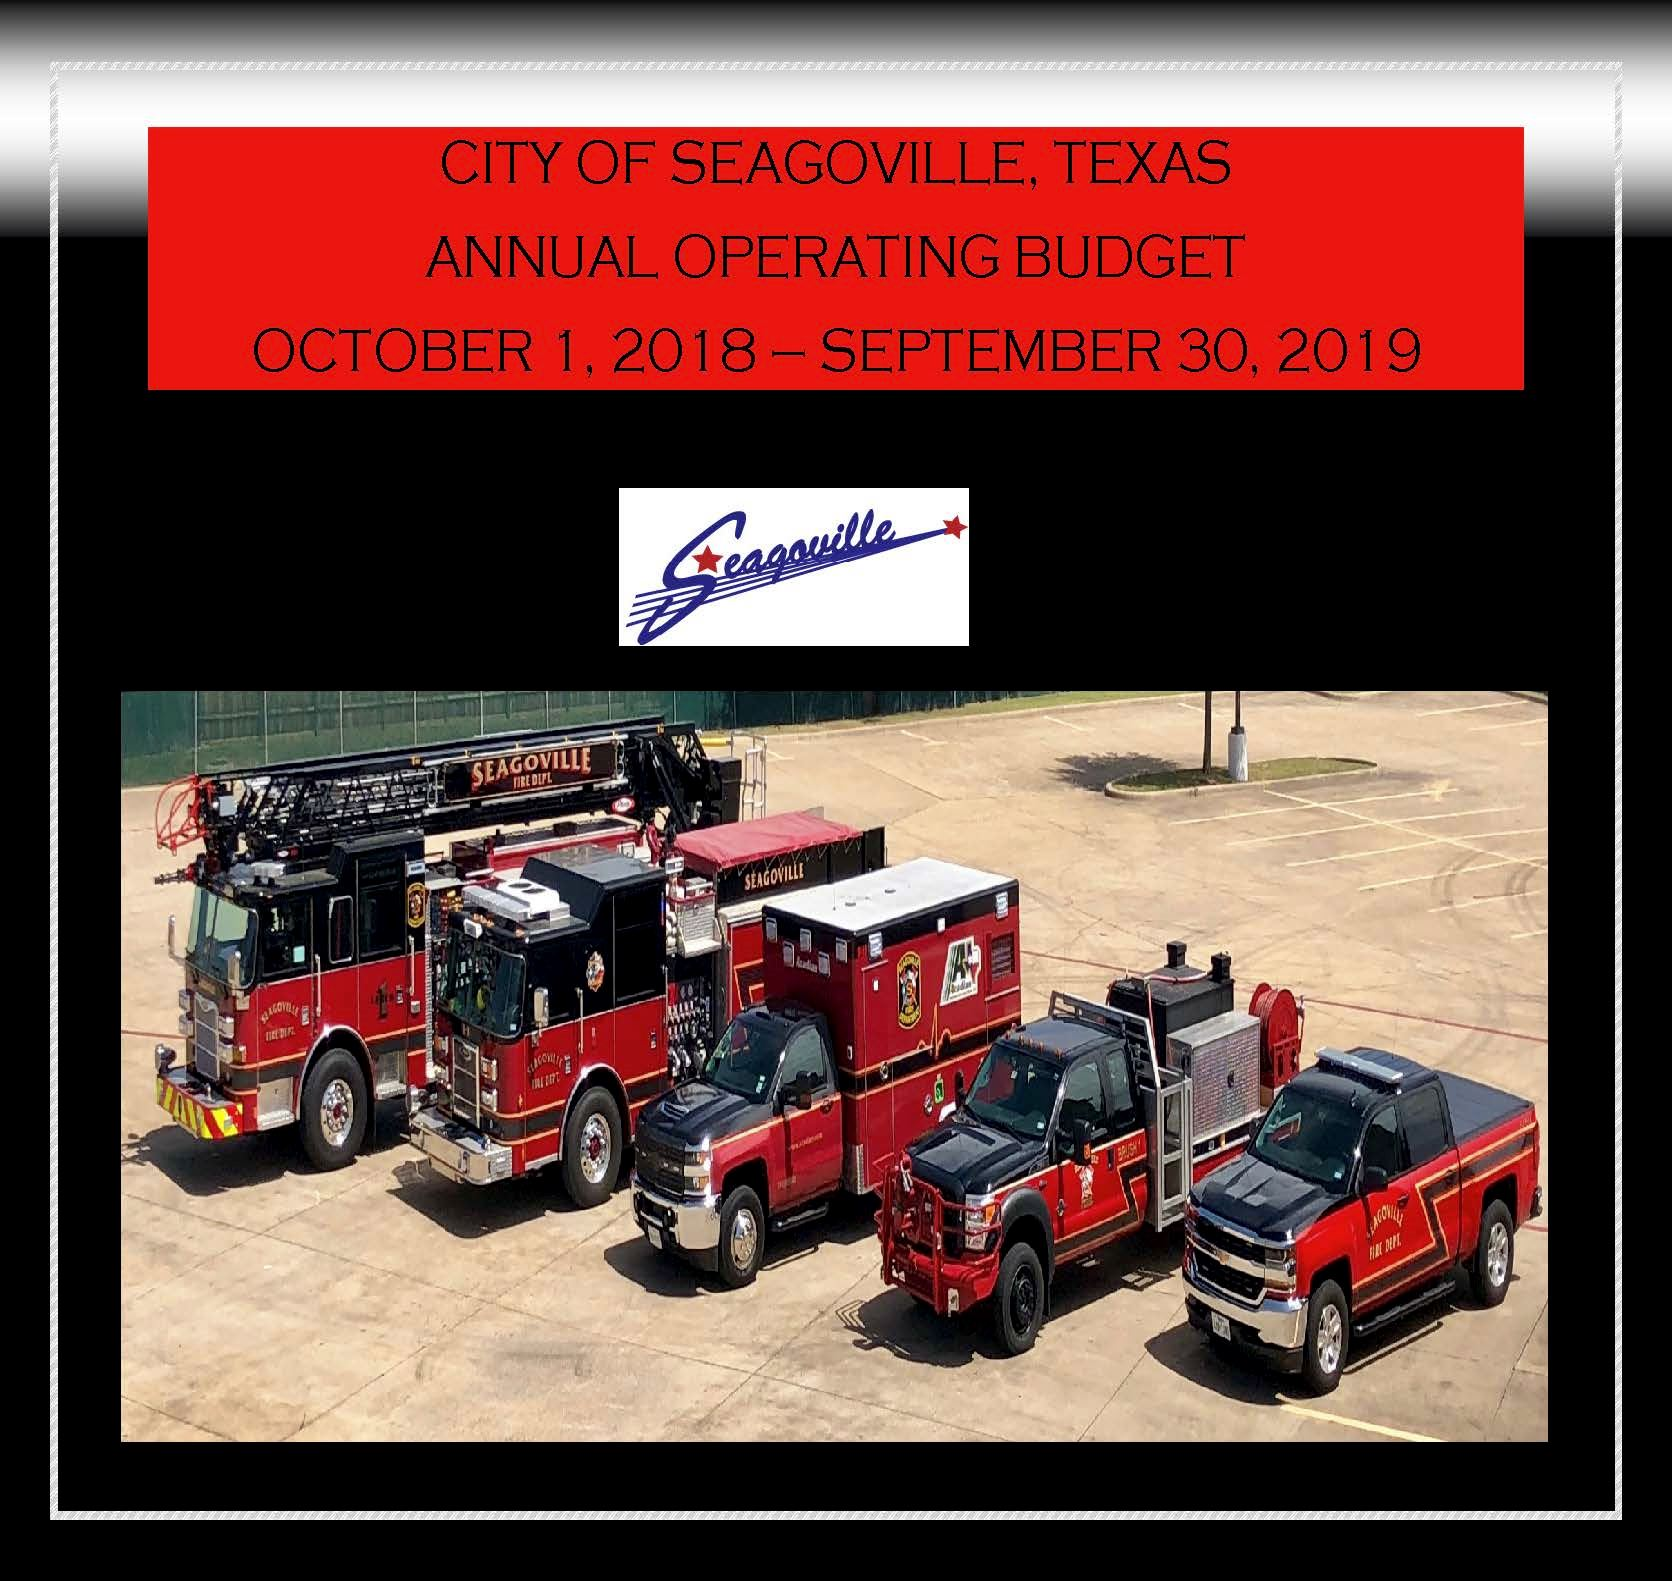 CITY OF SEAGOVILLE Budget Cover